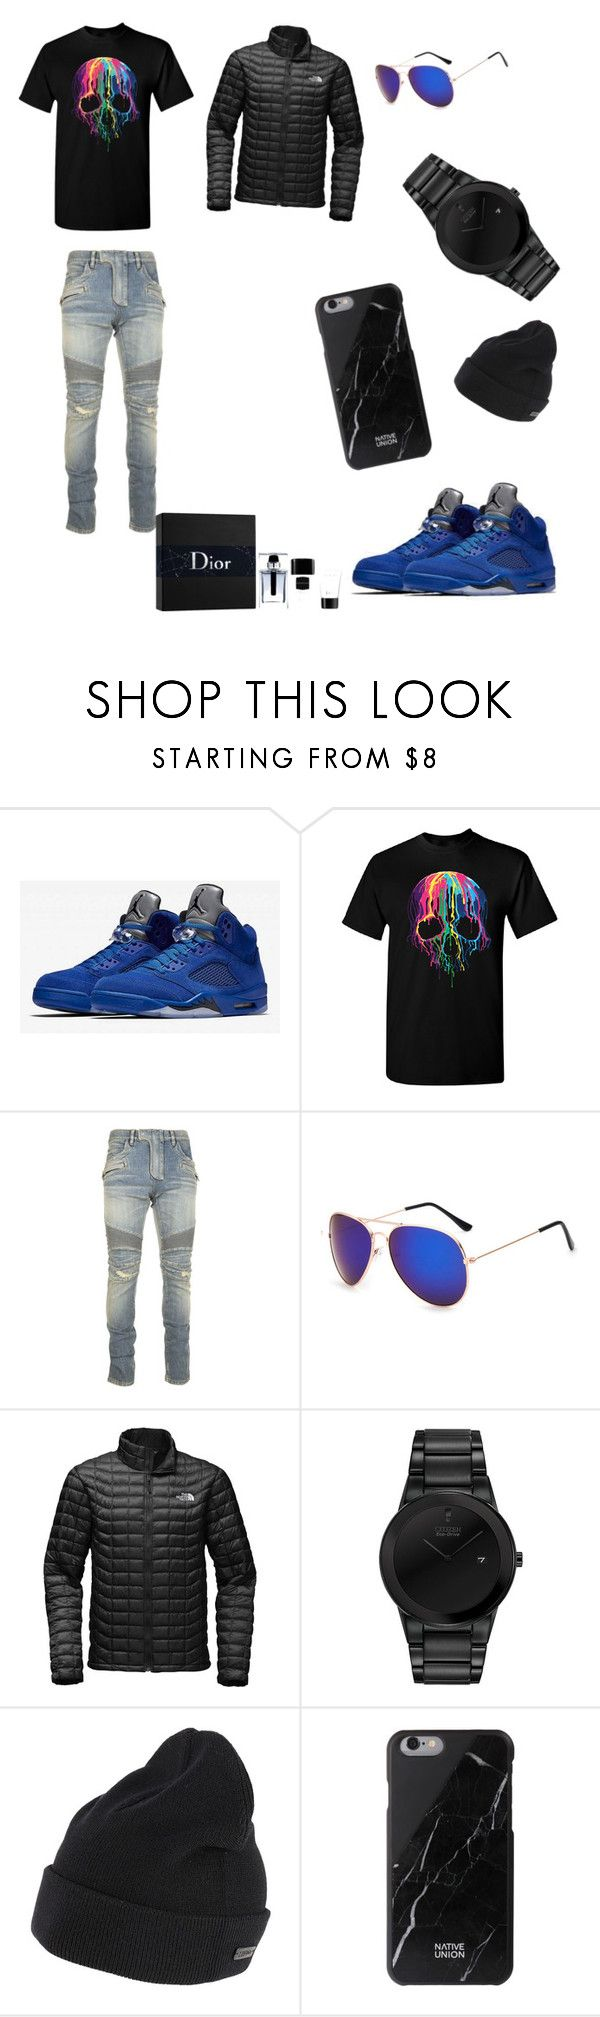 """""""these shoes😘"""" by lolaloveless on Polyvore featuring Balmain, The North Face, Citizen, Z Zegna, Native Union, Christian Dior, men's fashion and menswear"""